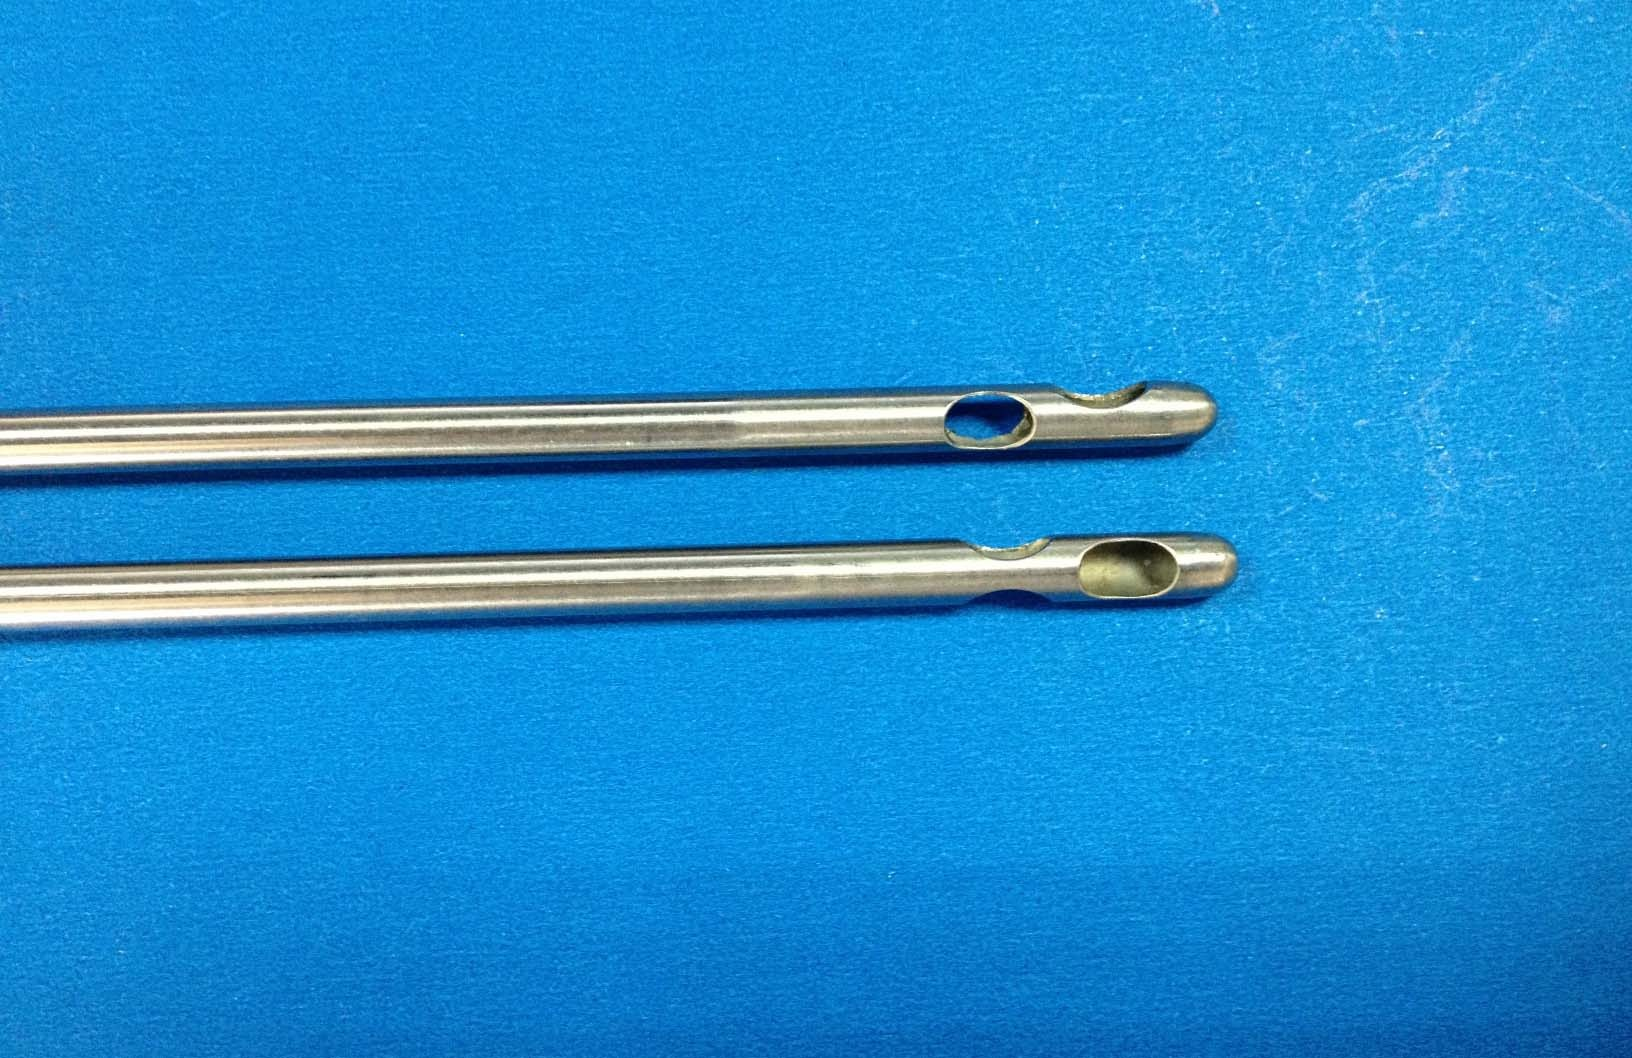 Liposuction Aspiration Cannula with Luer Lock